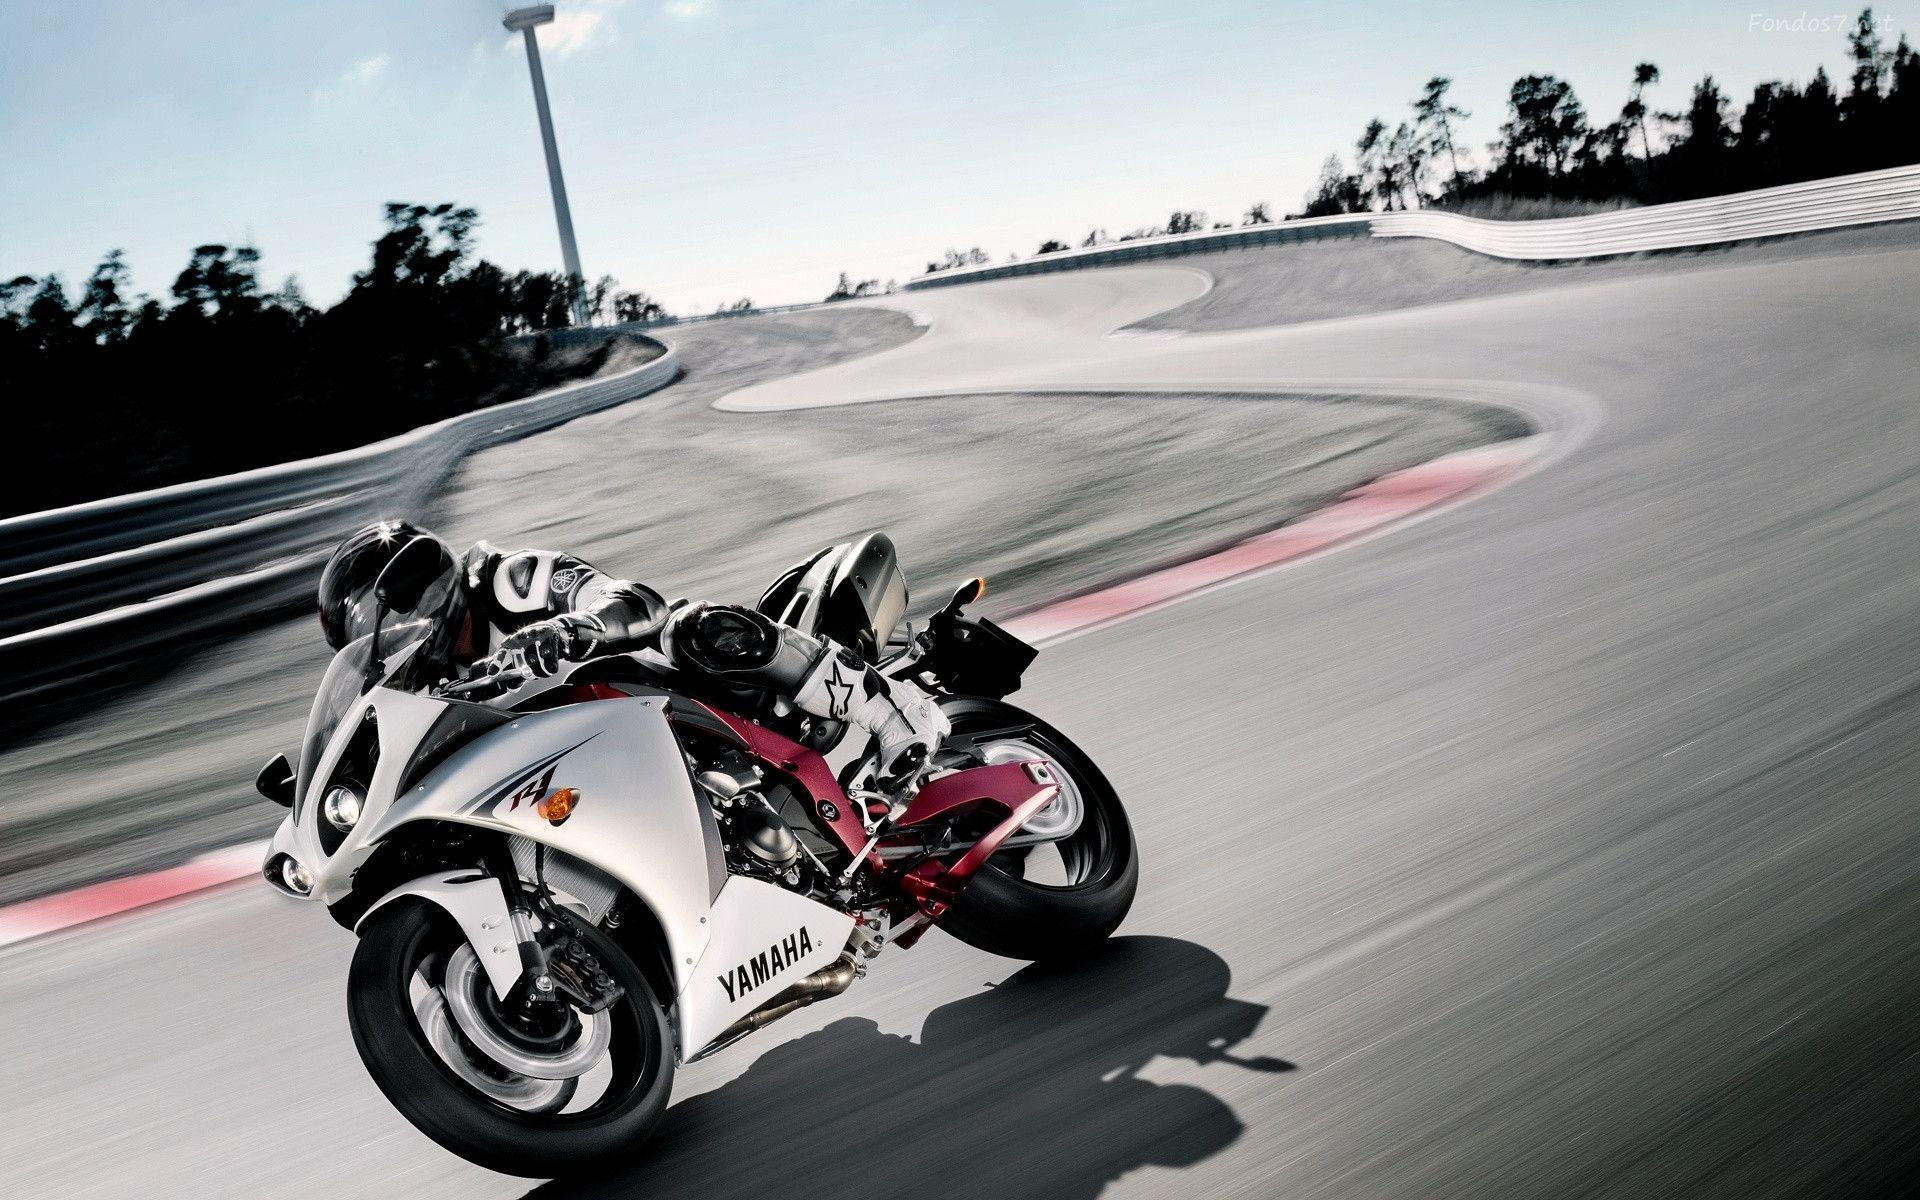 Superbike Hd Wallpaper Full Screen: Yamaha R1 Wallpapers